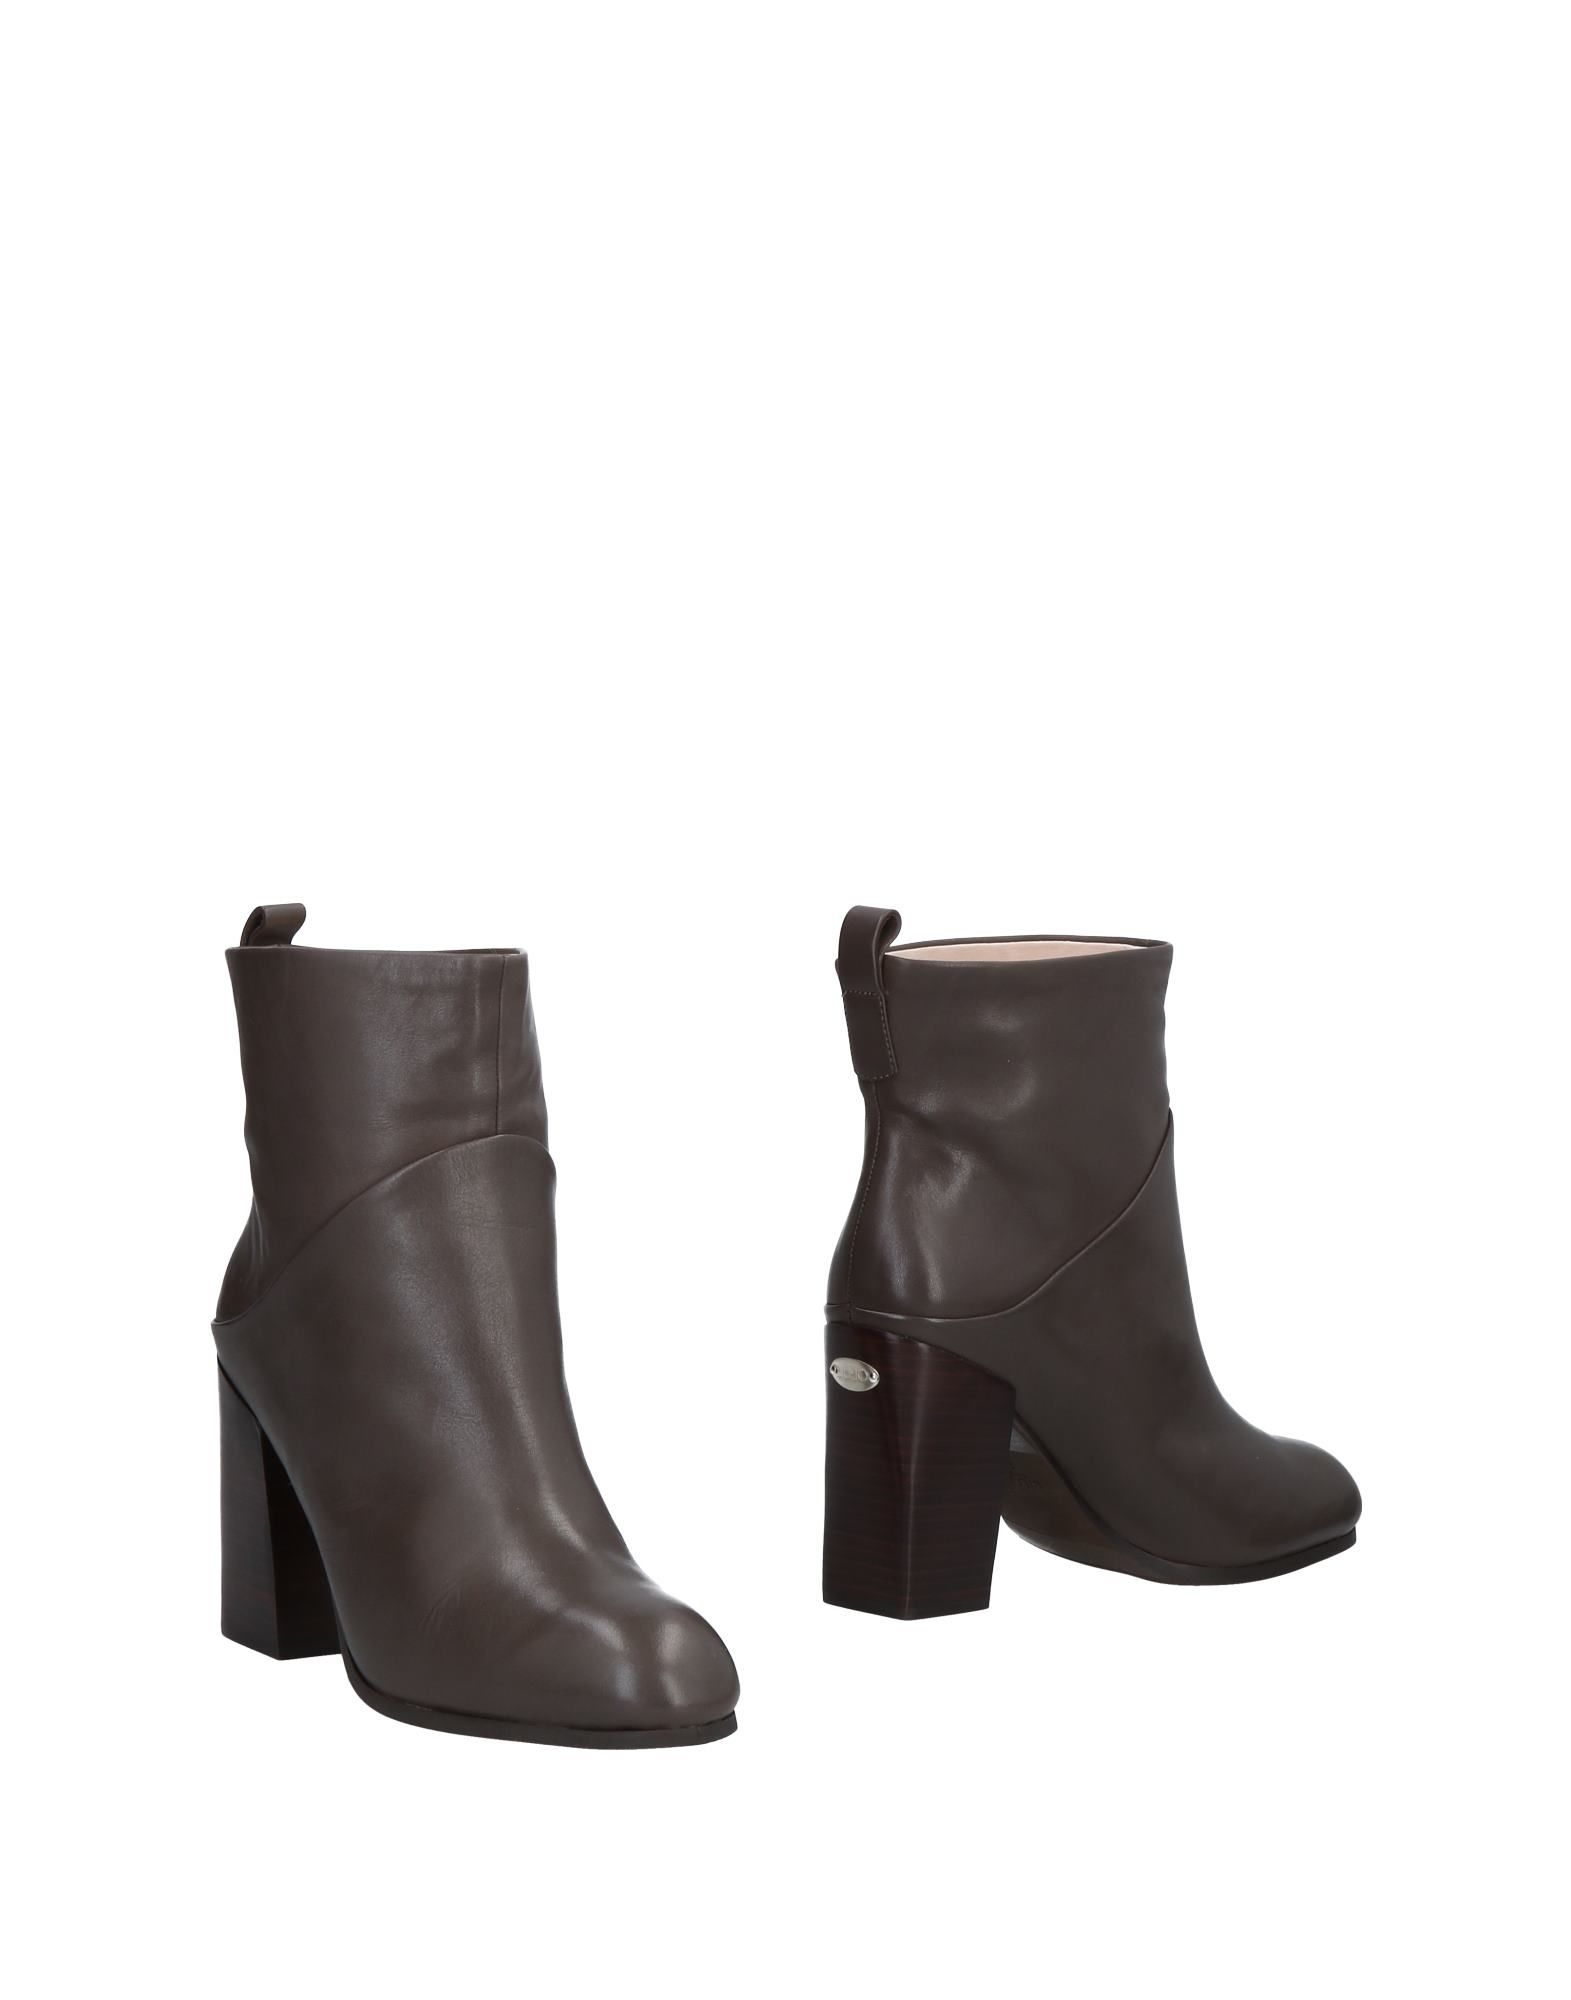 Liu •Jo Shoes Ankle Boot Shoes - Women Liu •Jo Shoes Boot Ankle Boots online on  Canada - 11173788GF 362032